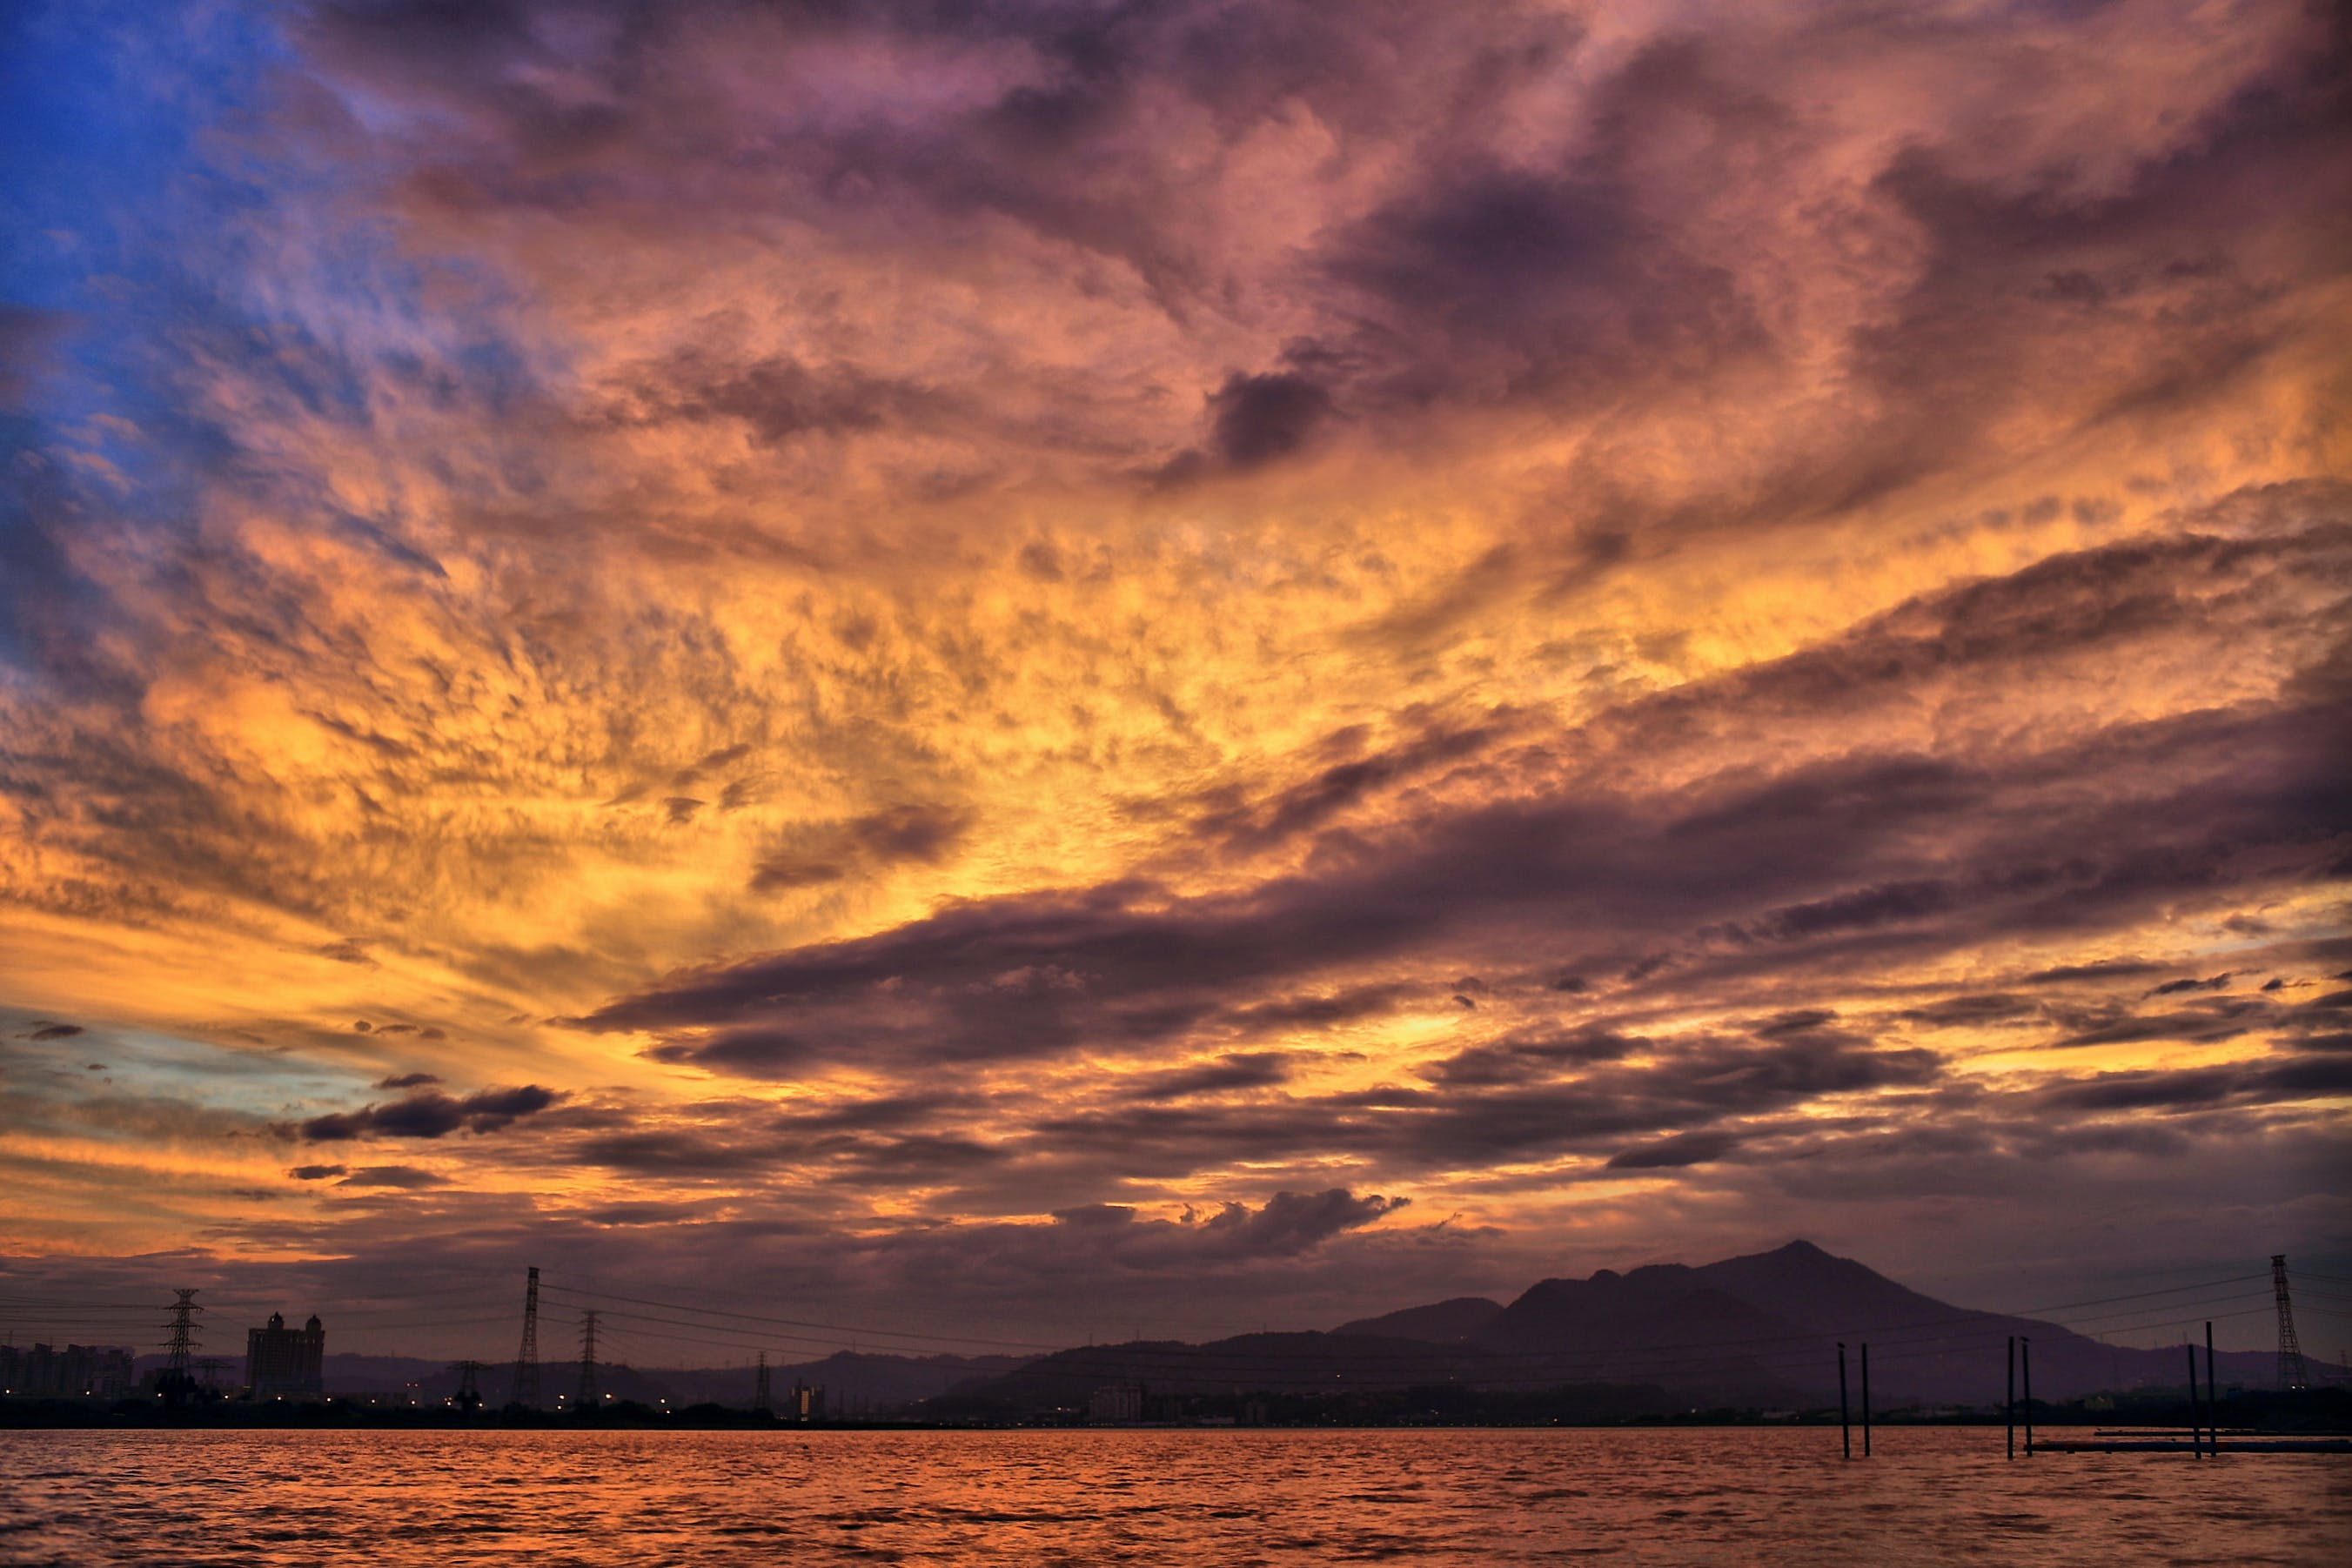 Sea and Silhouette of Mountain Under Orange Sky during Golden Hour